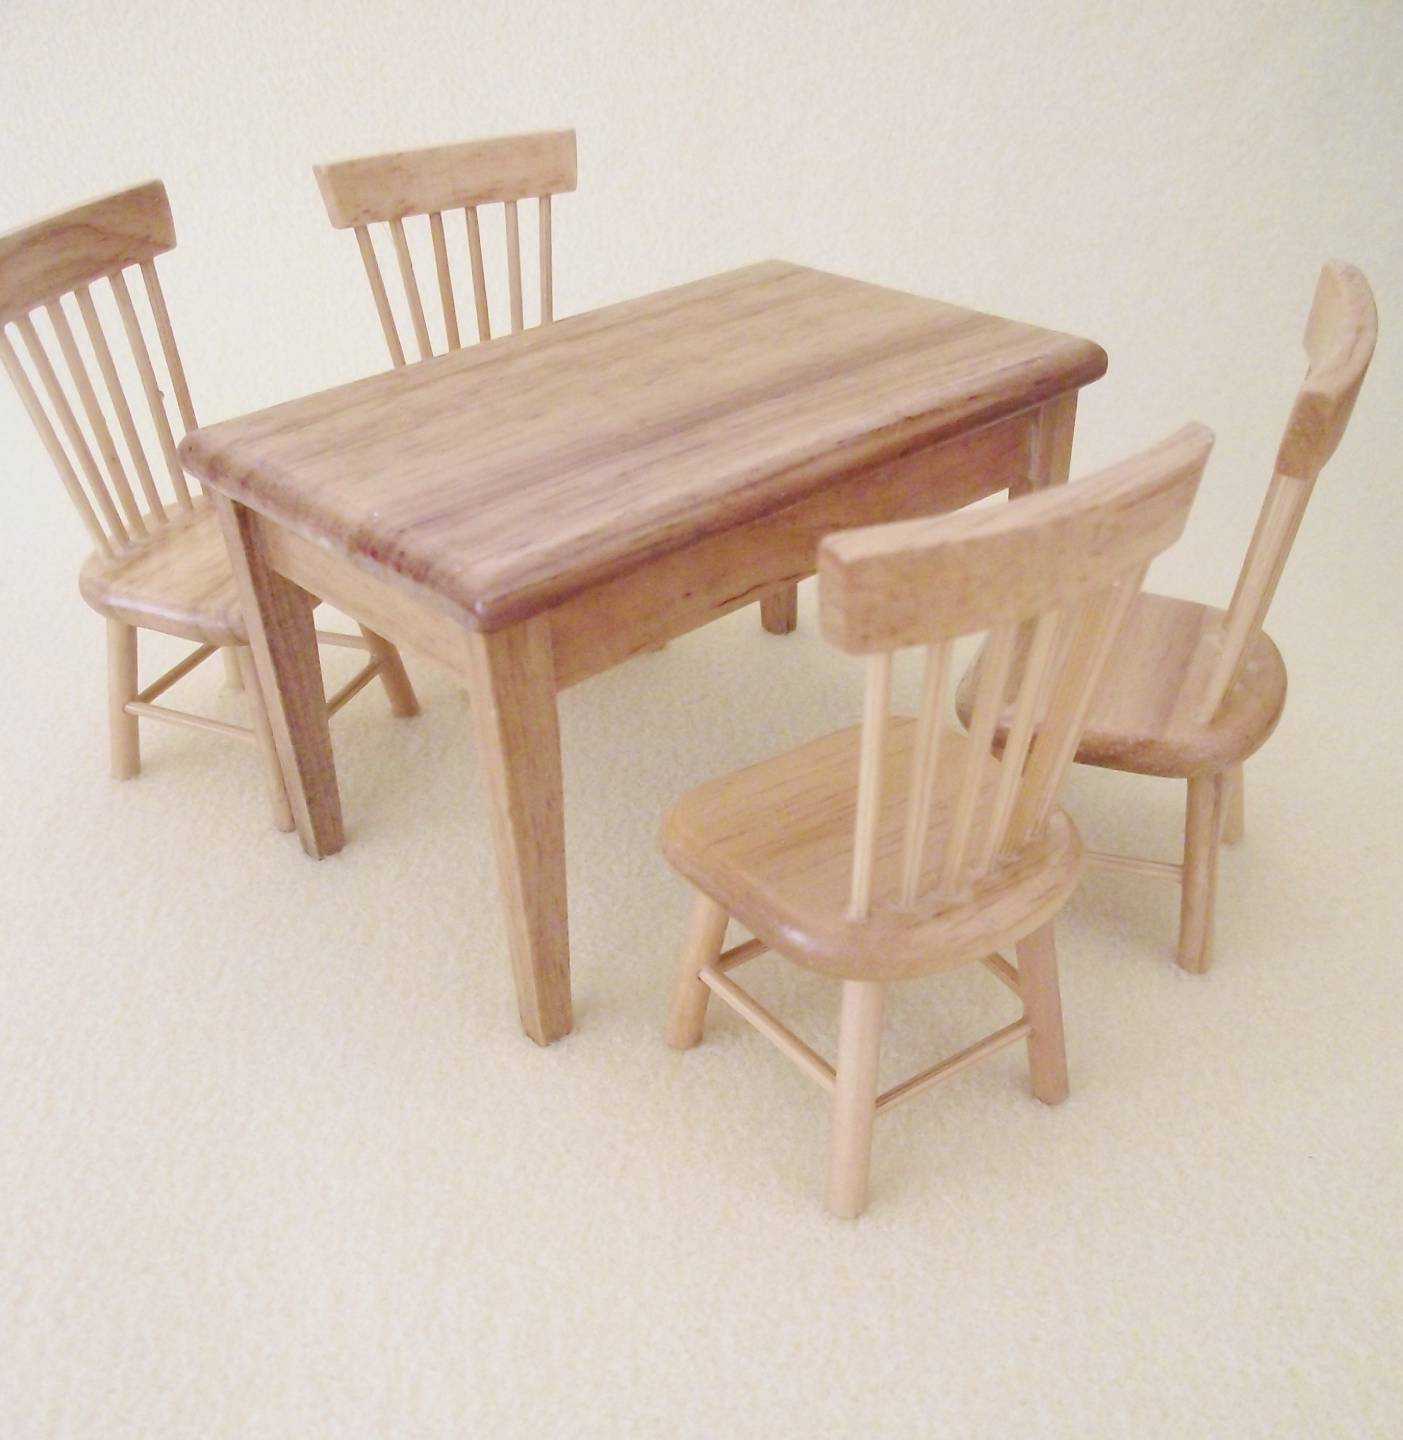 MINIATURE-DOLLS-HOUSE-12TH-SCALE-FURNITURE-KITCHEN-TABLE-AND-4-CHAIRS-LIGHT-OAK